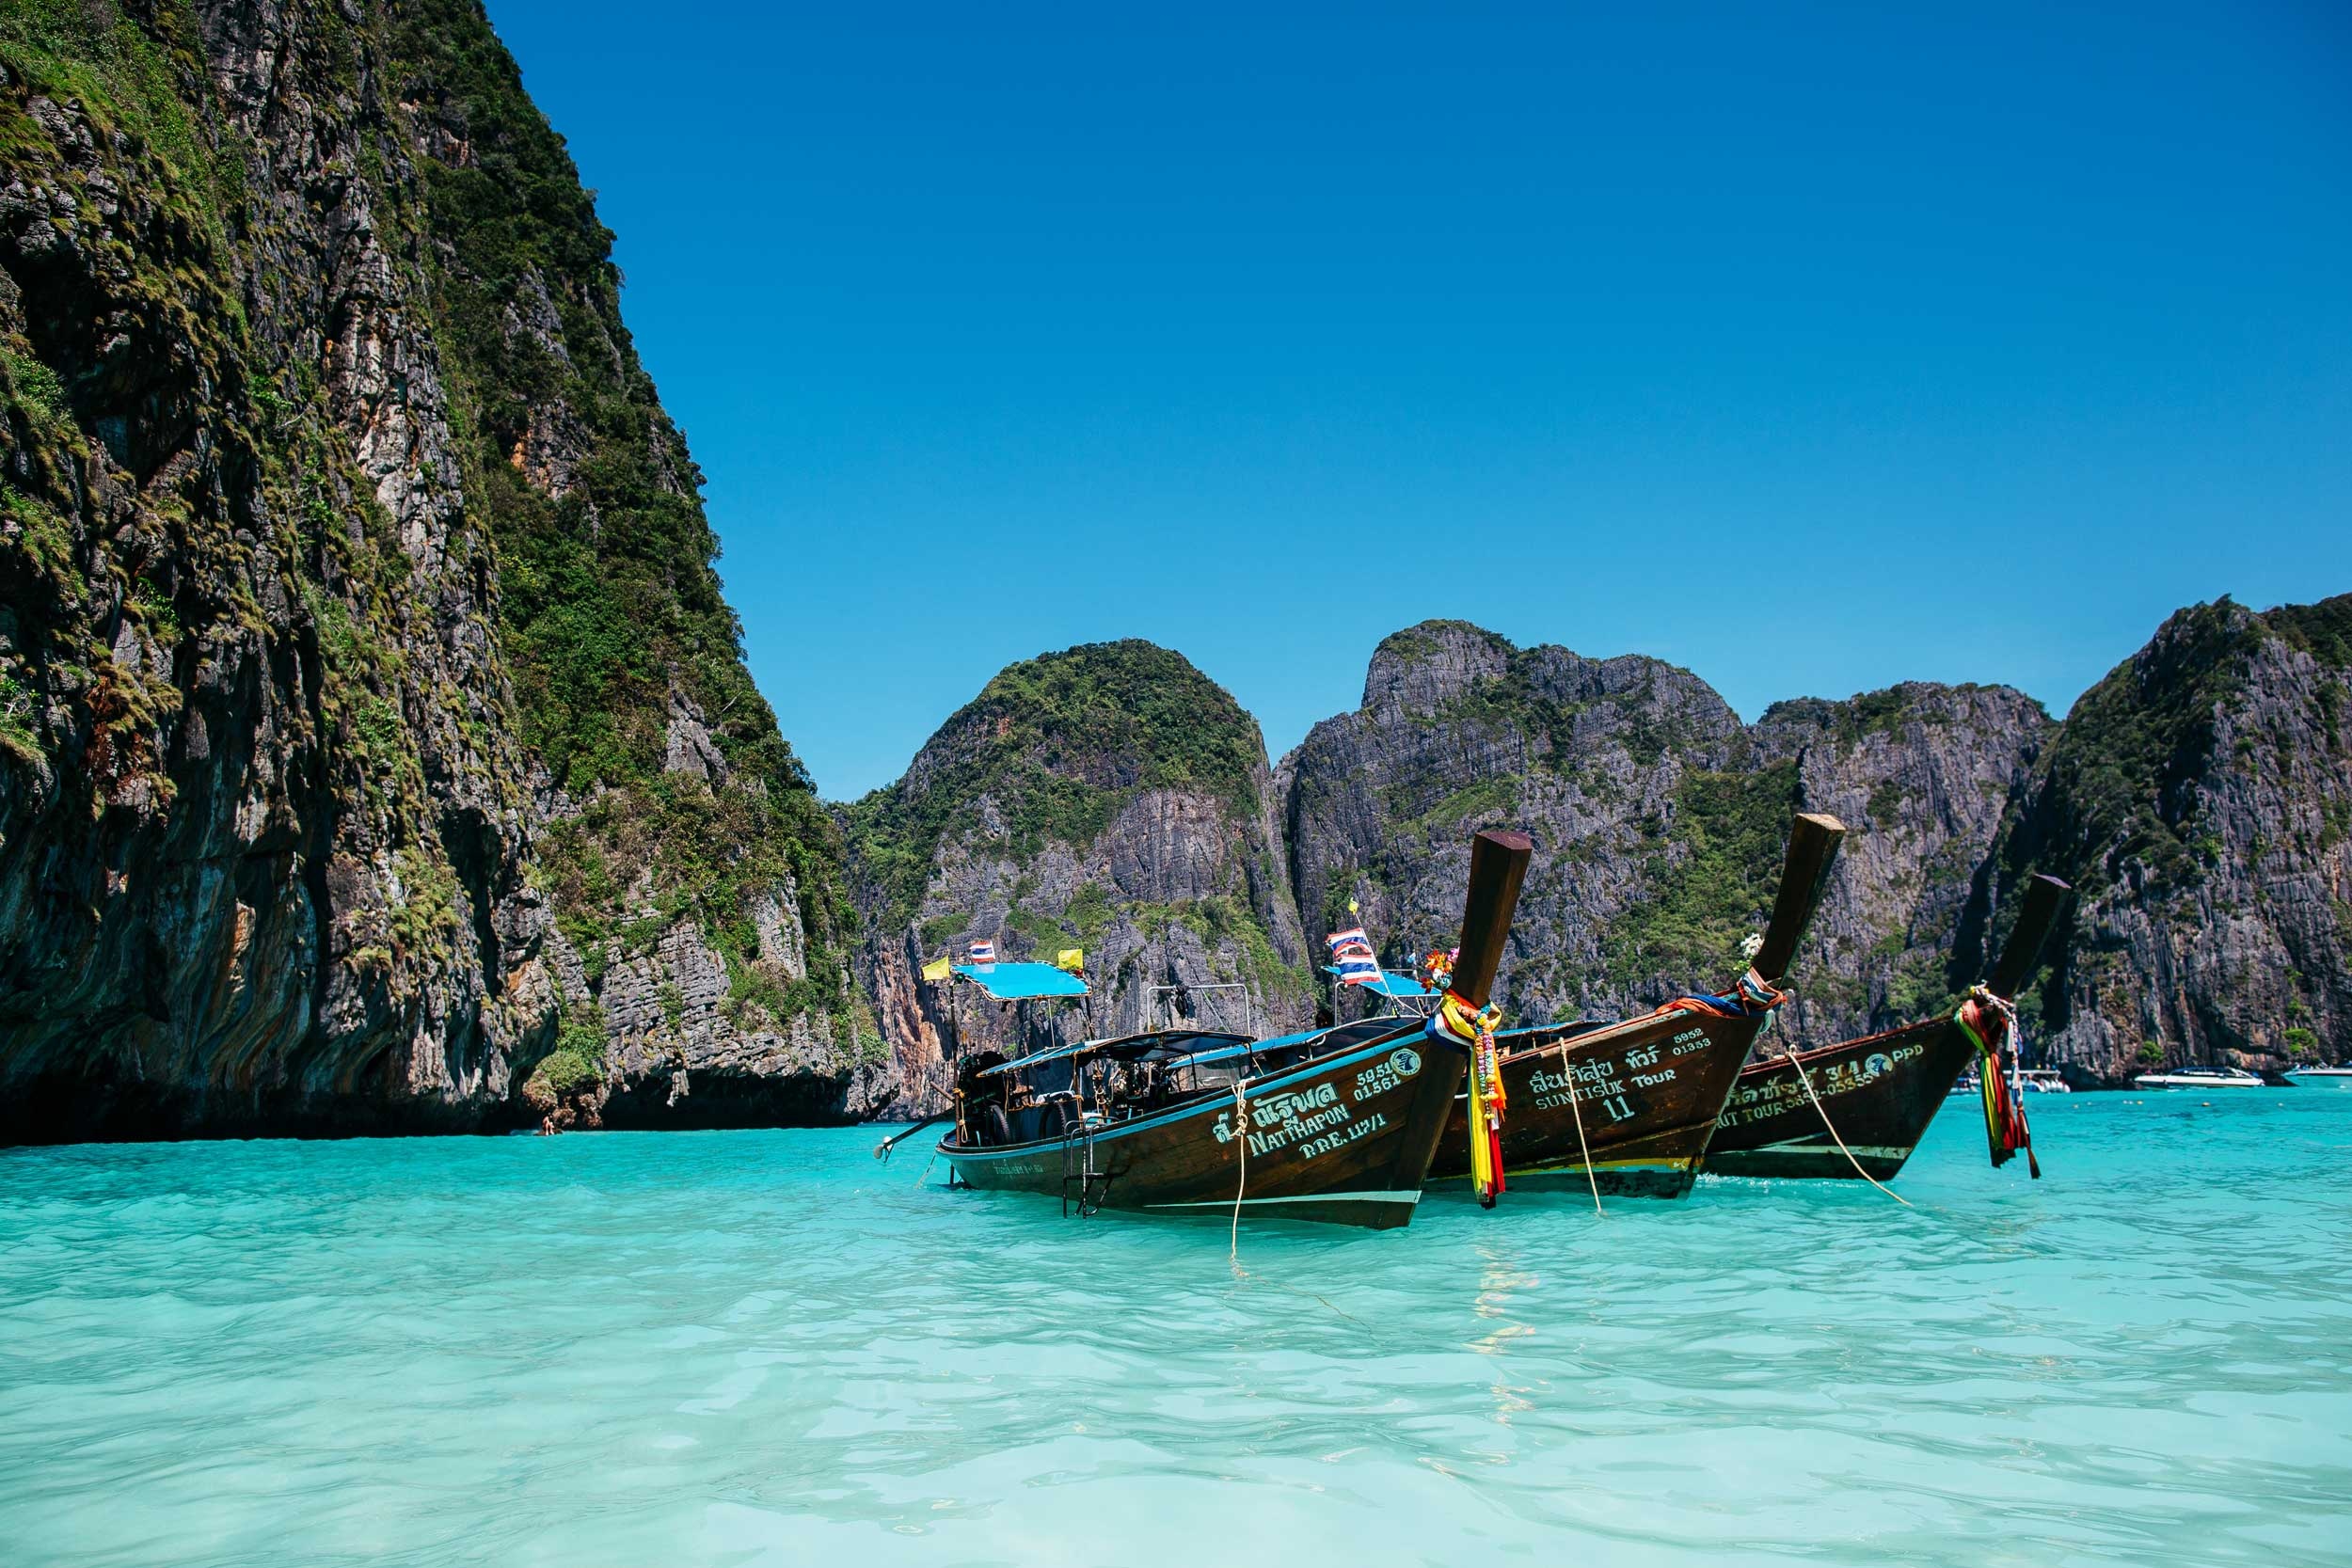 Three moored Thai longtail boats bobbing in clear blue water with rock islands behind them, Maya Bay, Thailand